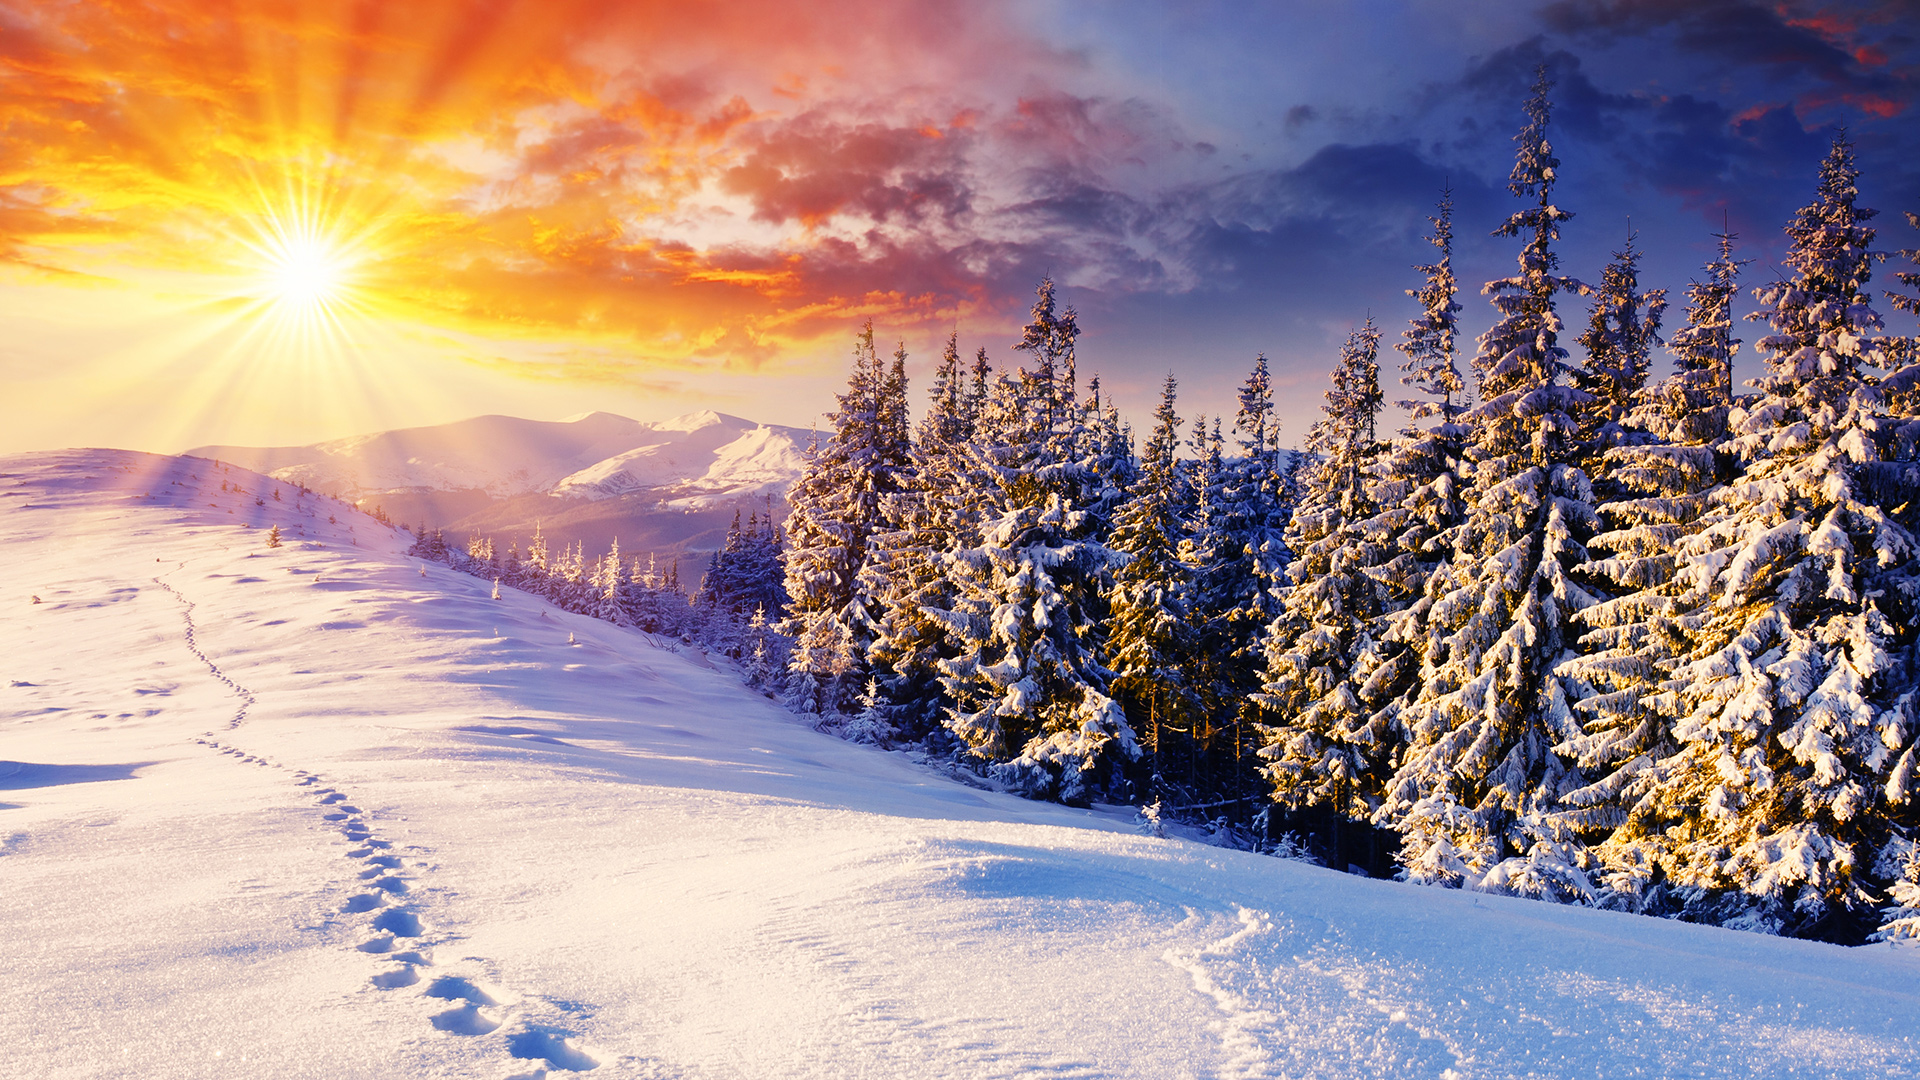 Winter-Get-Free-top-quality-Winter-for-your-desktop-PC-background-ios-or-an-wallpaper-wpc90010720